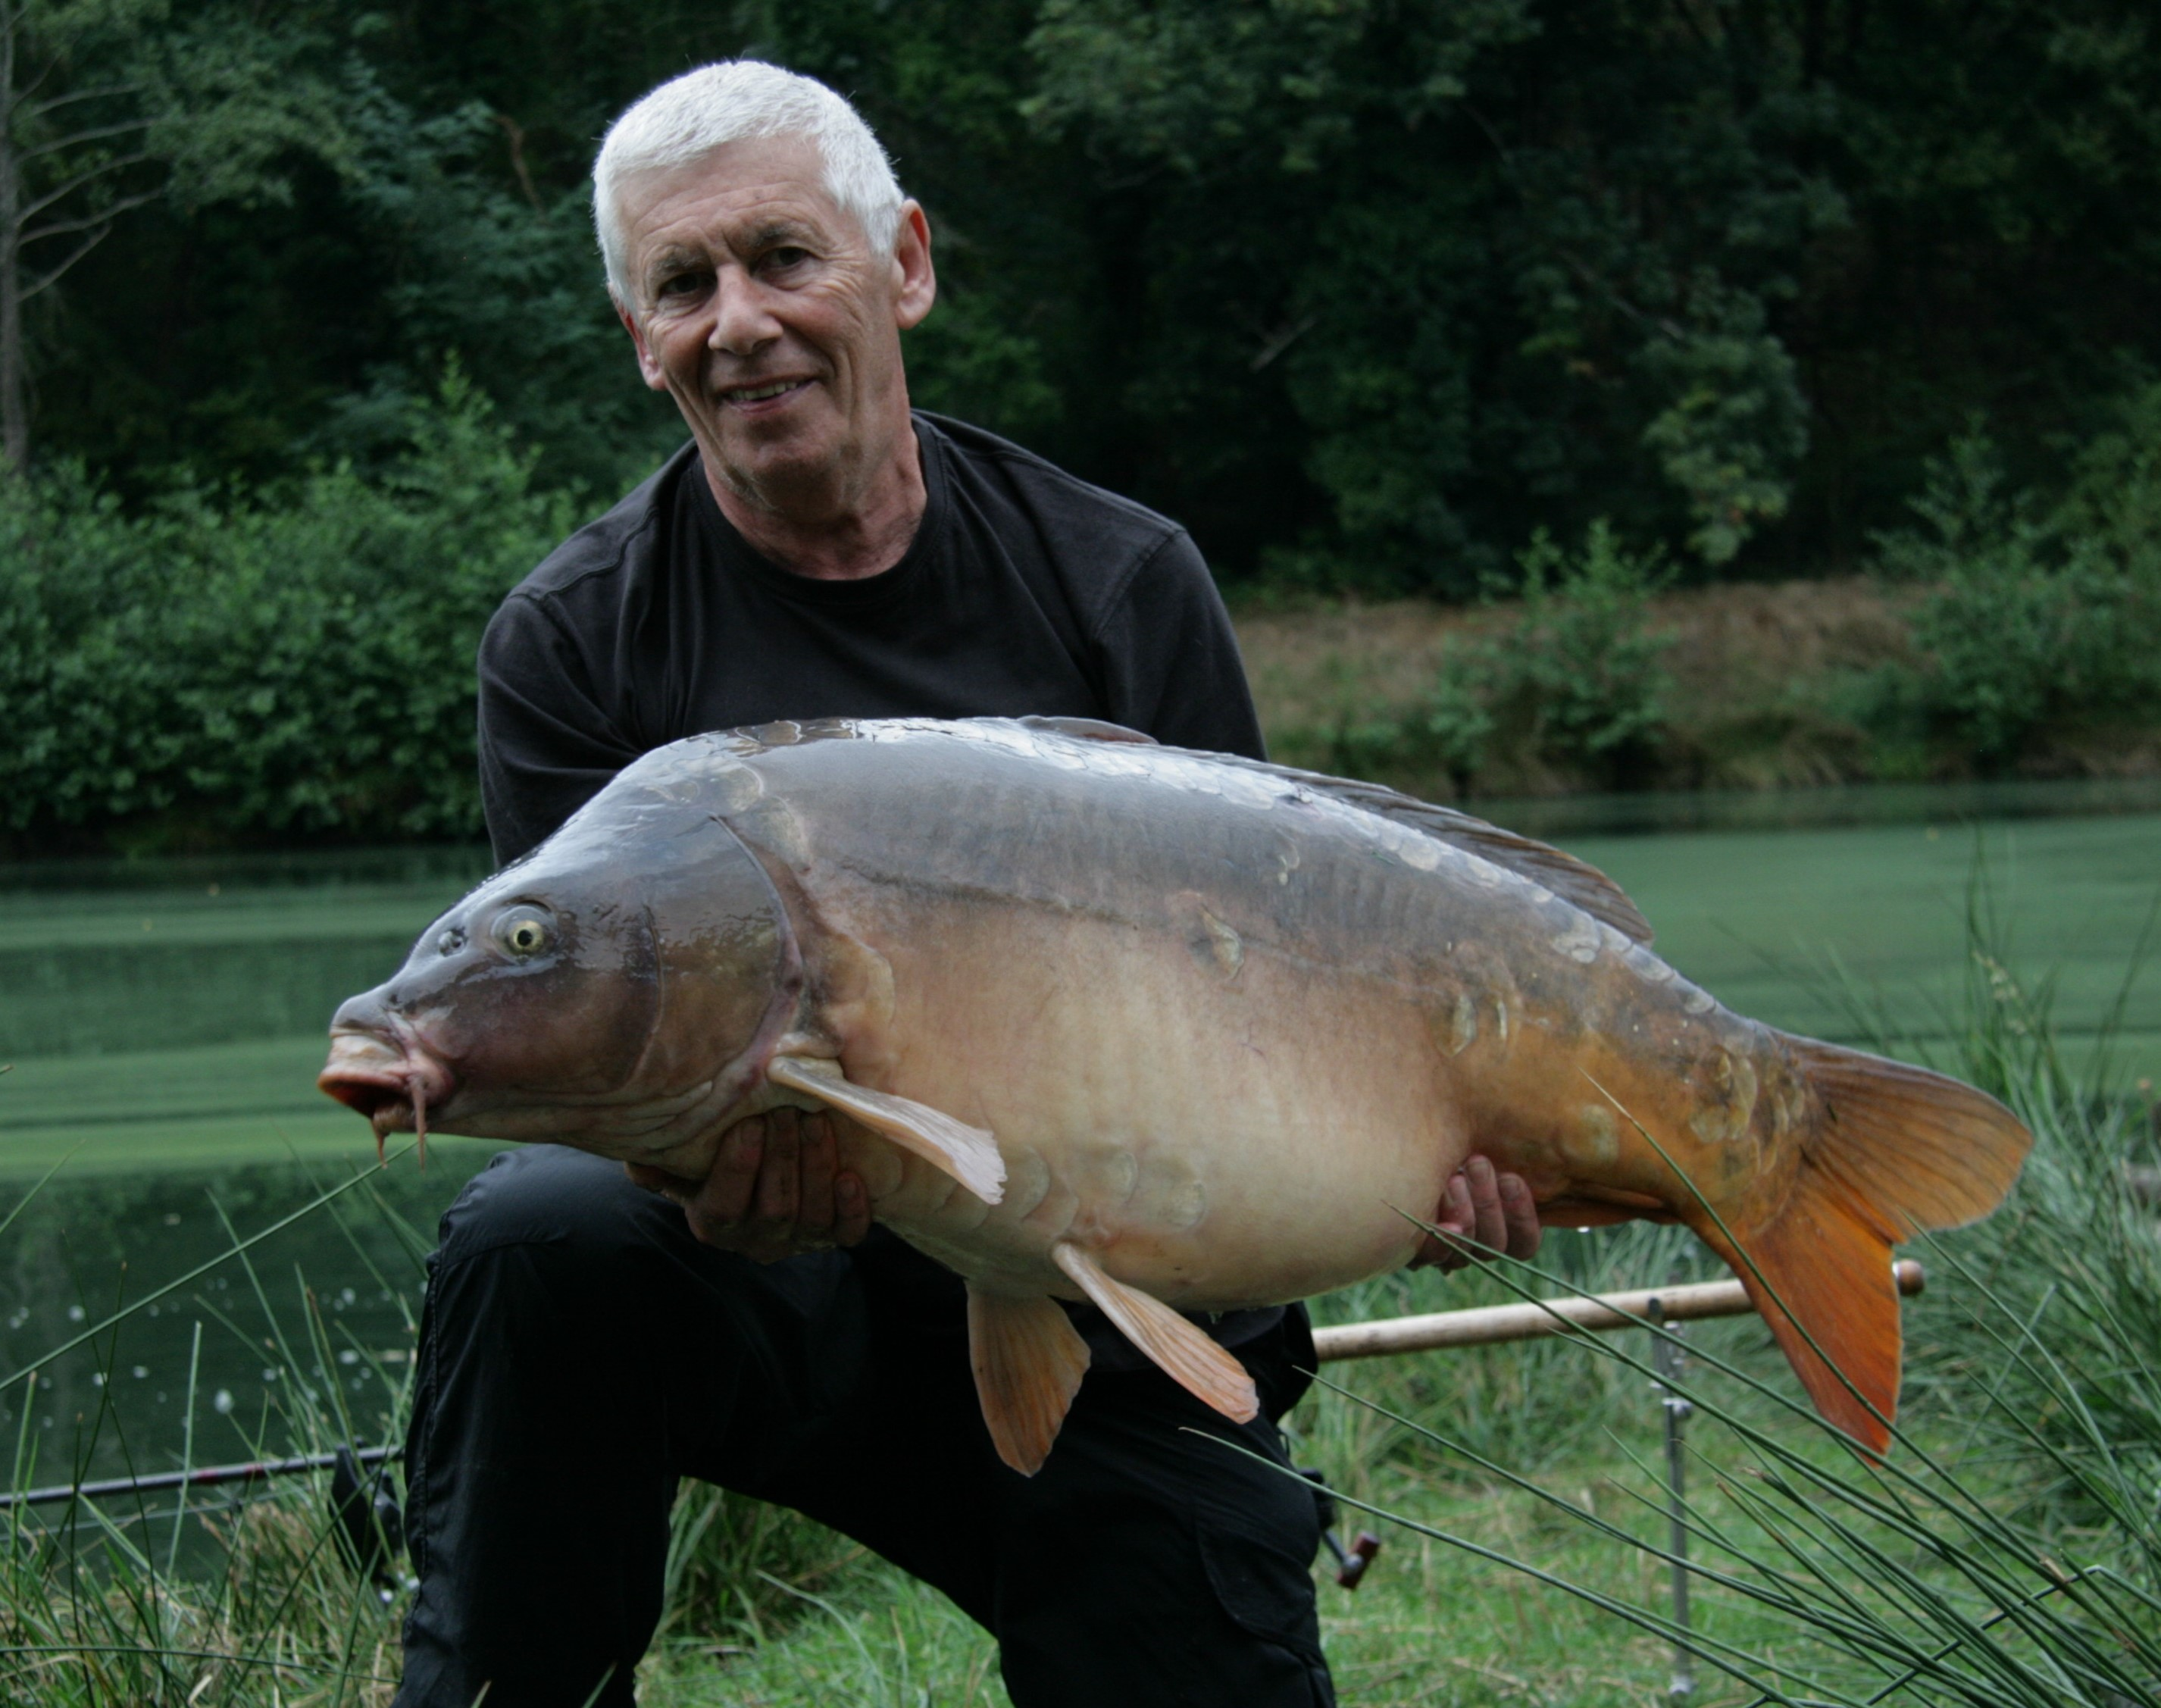 https://www.puyravaudcarp.com/wp-content/uploads/2016/10/44.051-1.jpg